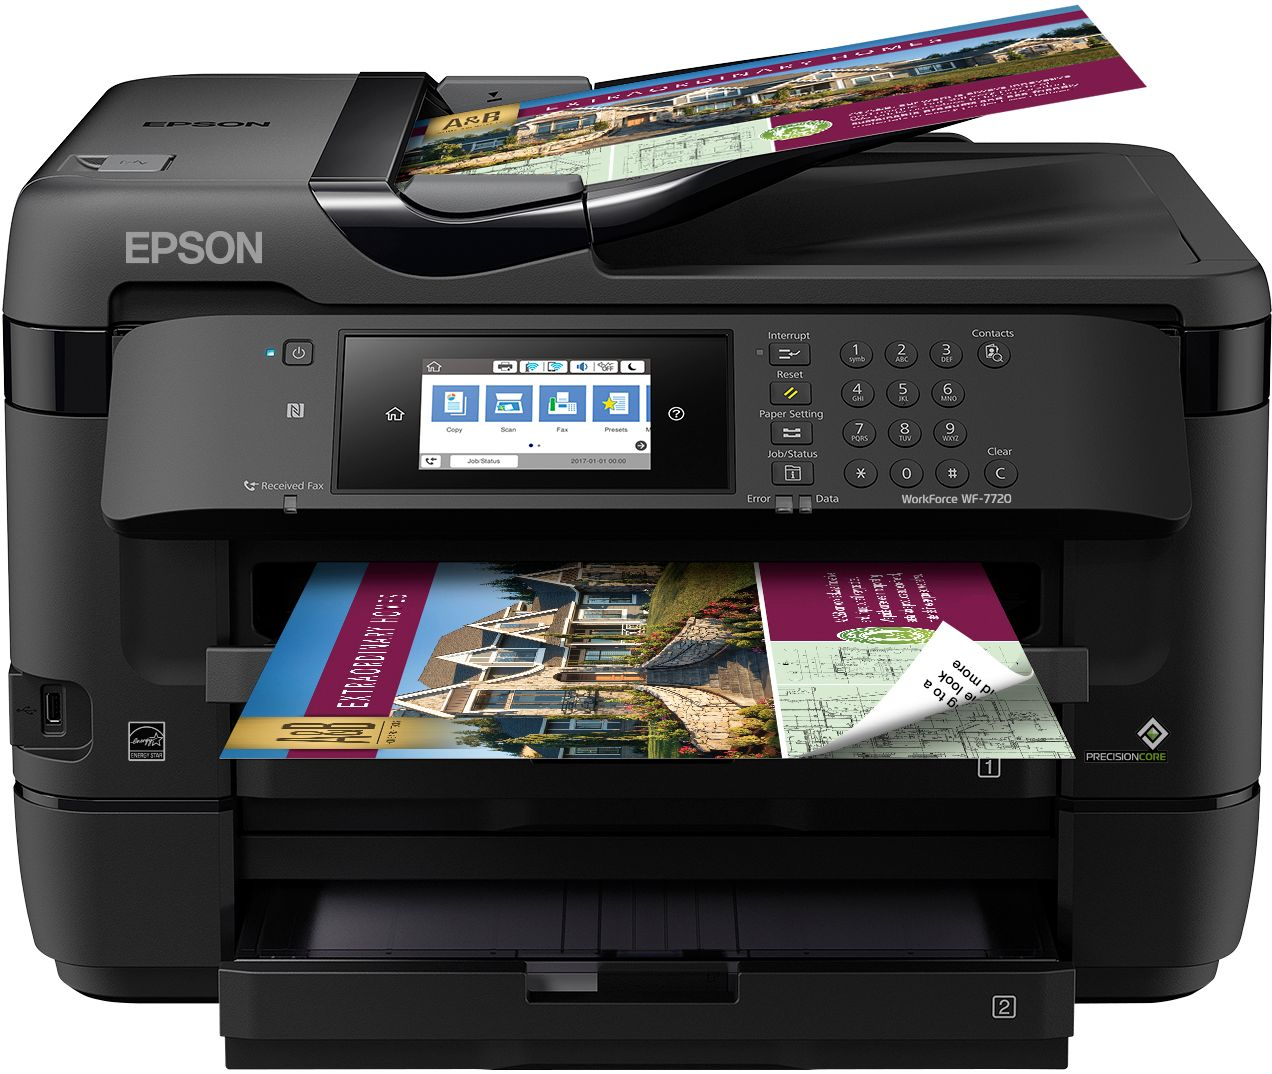 Floor Epson Workforce Wireless Printer Black Wf Buy Epson Workforce Wireless Printer Black Wf Epson Printer Won T Print From Mac Epson Printer Won T Print Black dpreview Epson Printer Wont Print